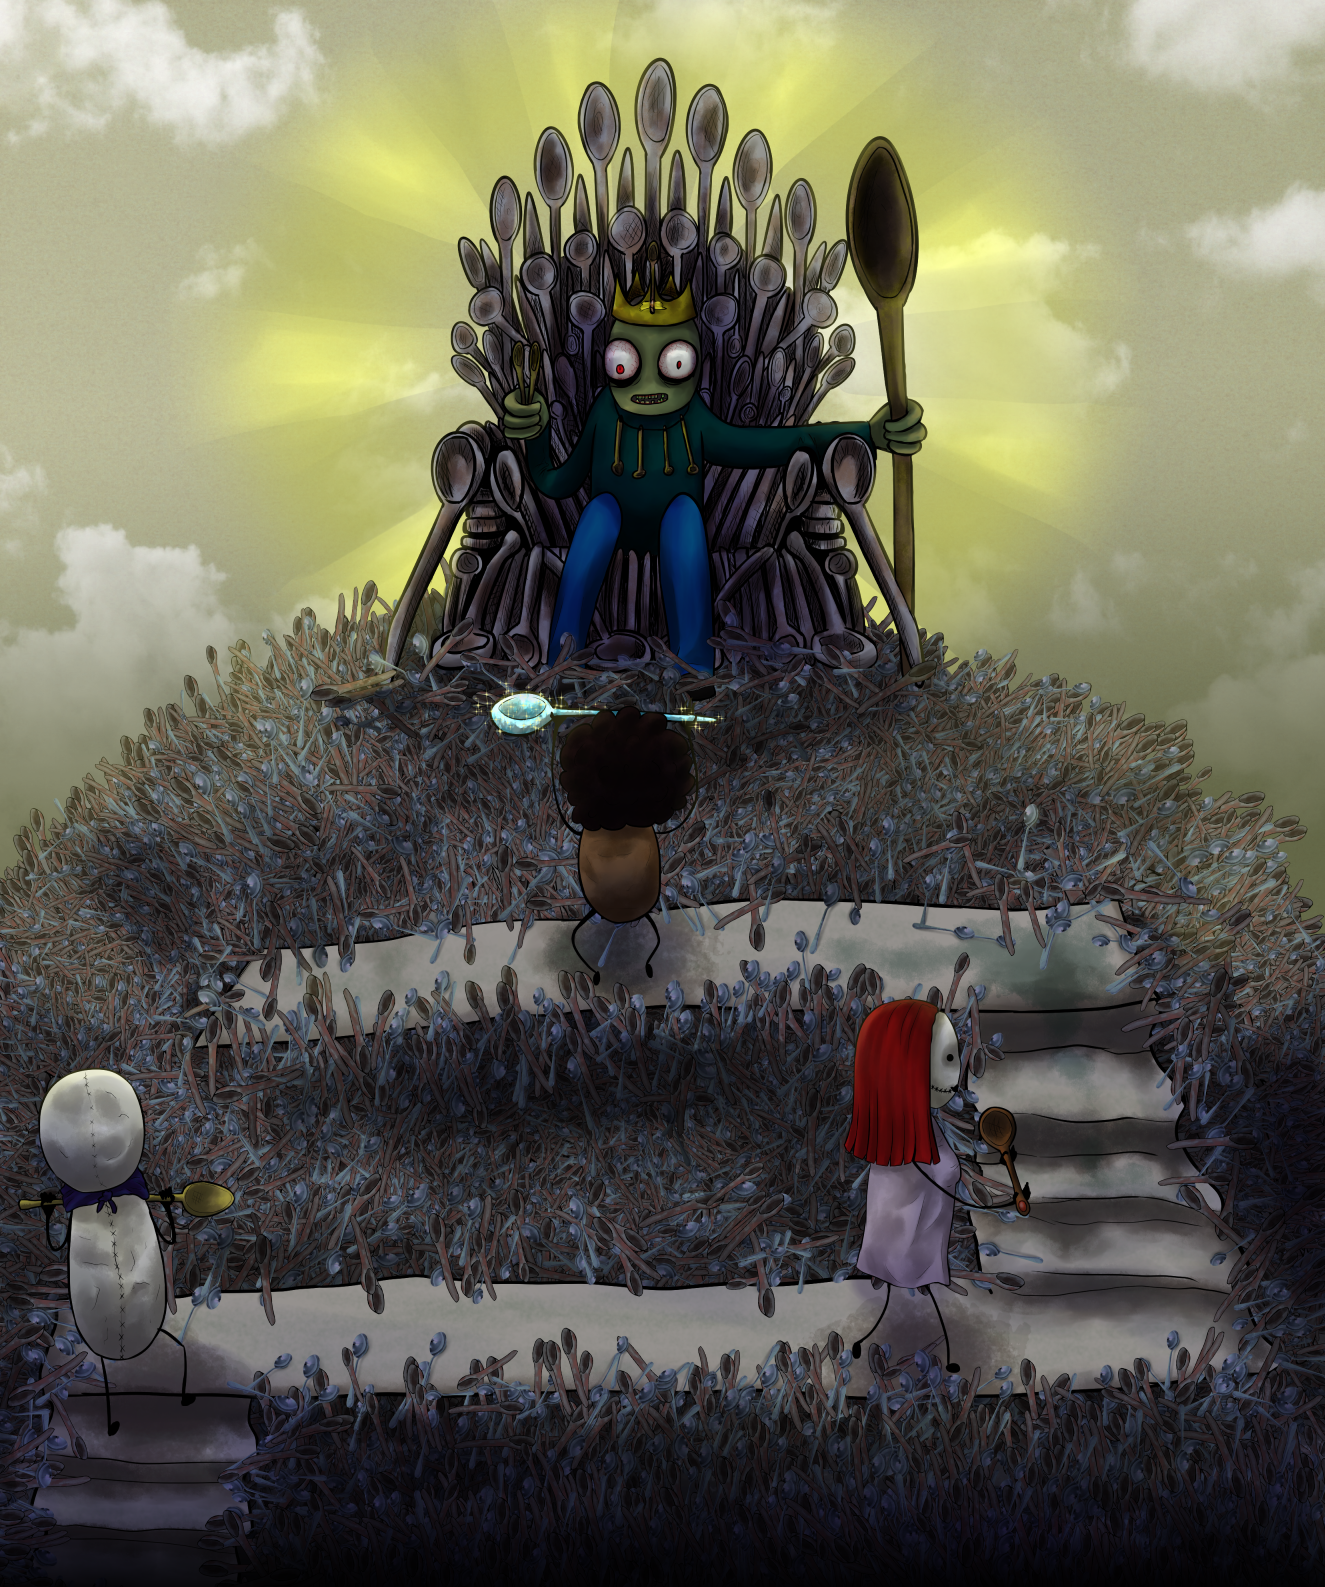 Throne of (rusty) Stainless Steel (LVL99)